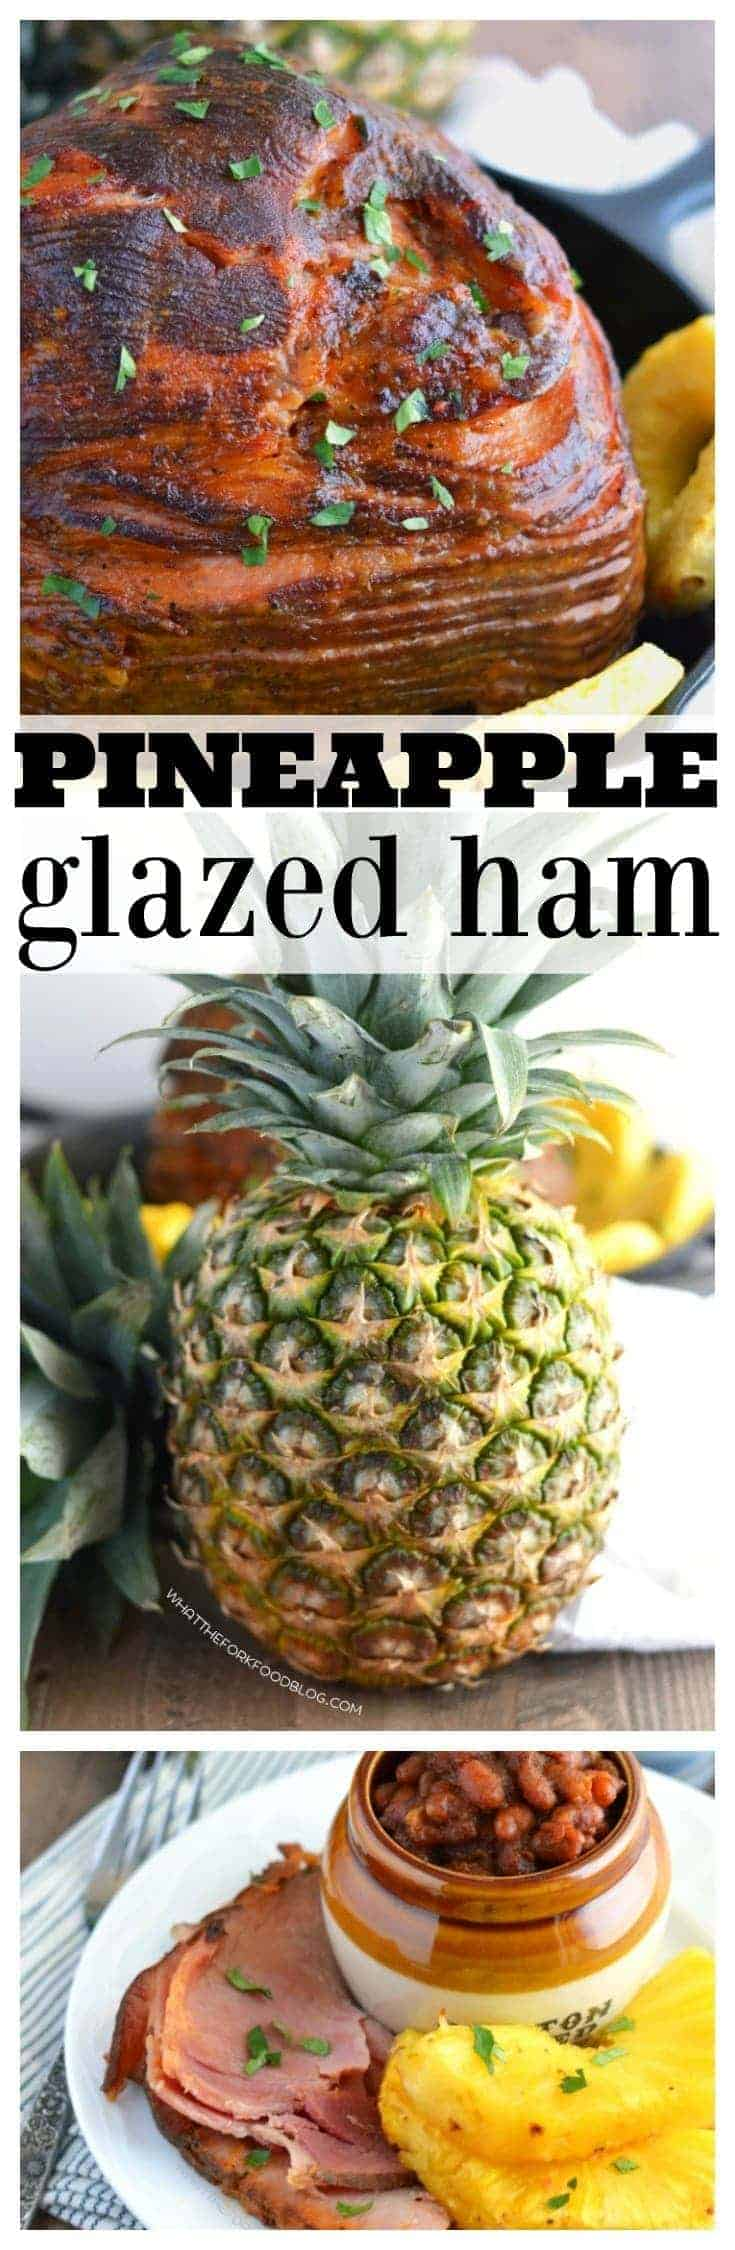 Pineapple Glazed Ham (gluten free and dairy free) from What The Fork Food Blog | whattheforkfoodblog.com